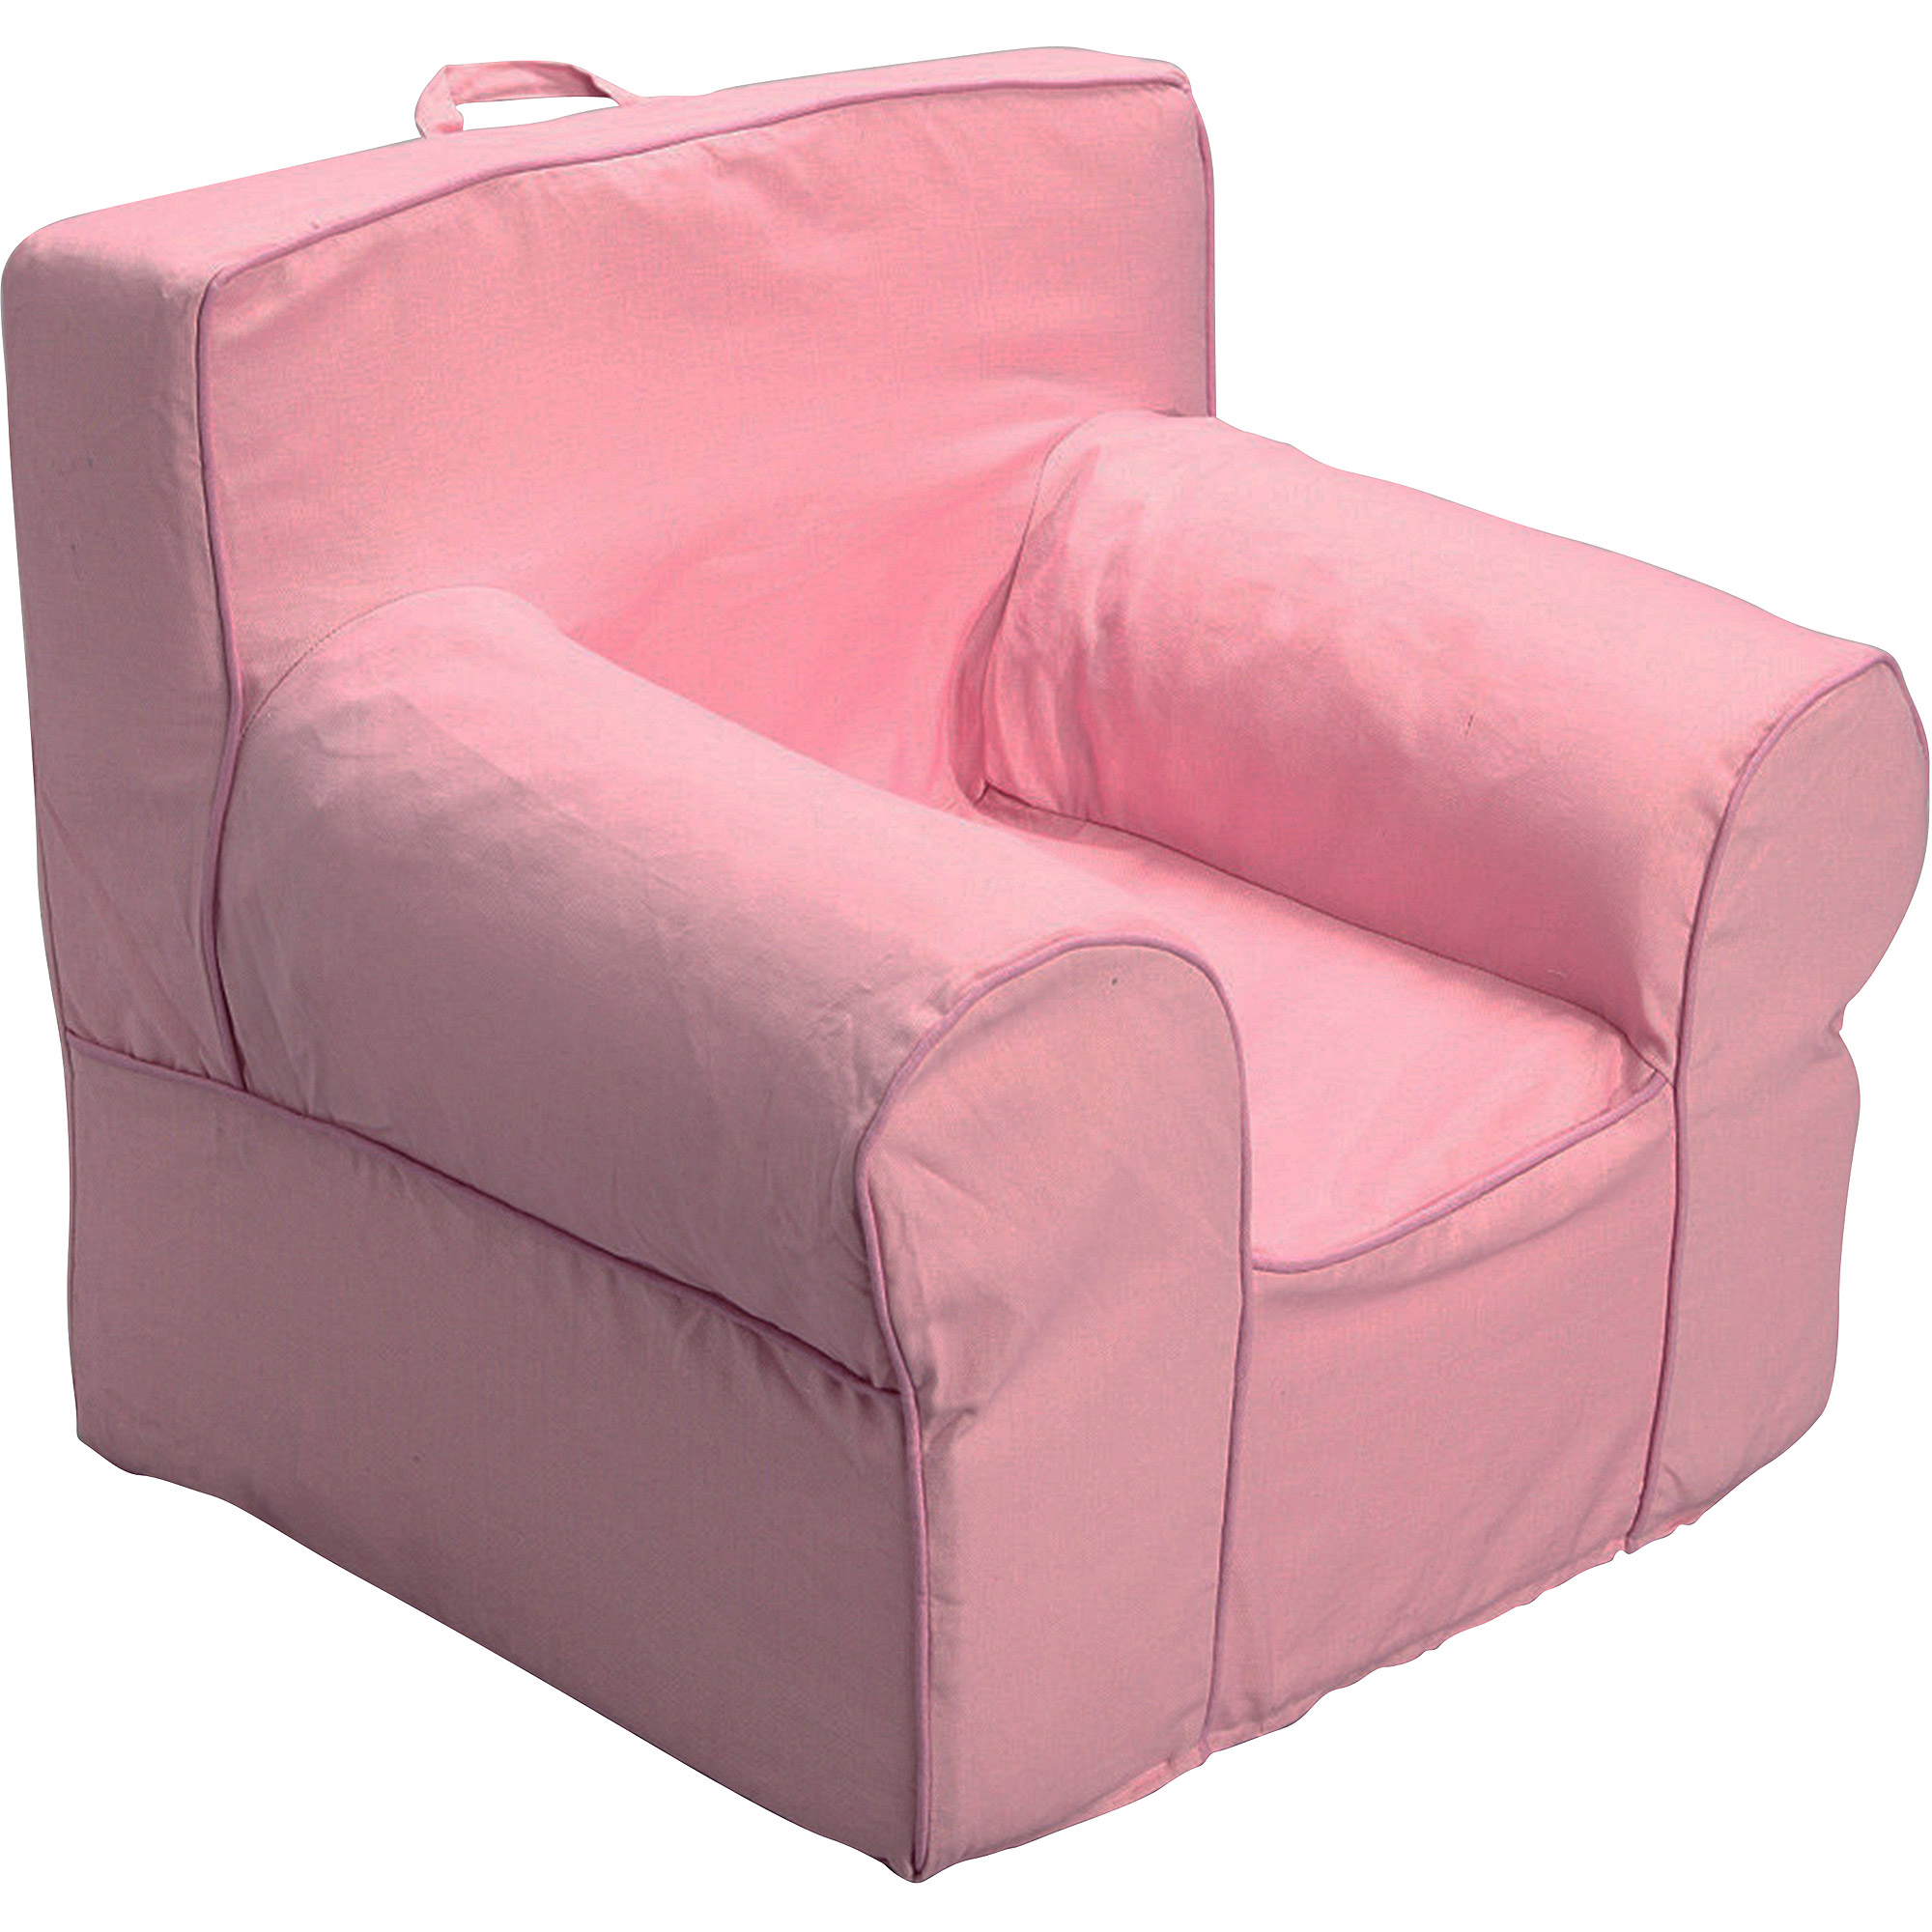 pink slipcover chair two person folding camp medium foam slip cover plus i walmart com departments